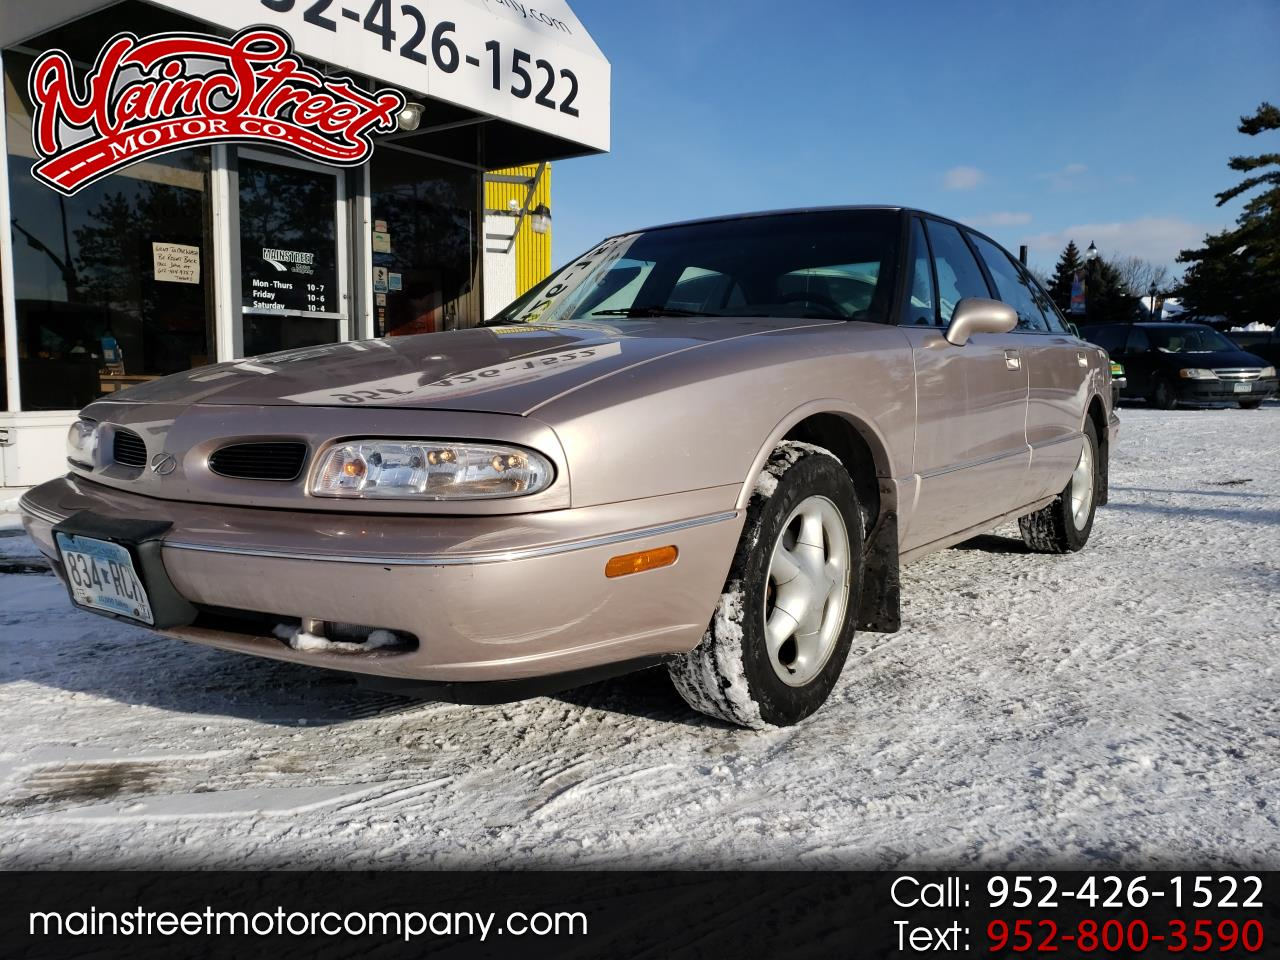 1999 Oldsmobile 88 4dr Sdn LS